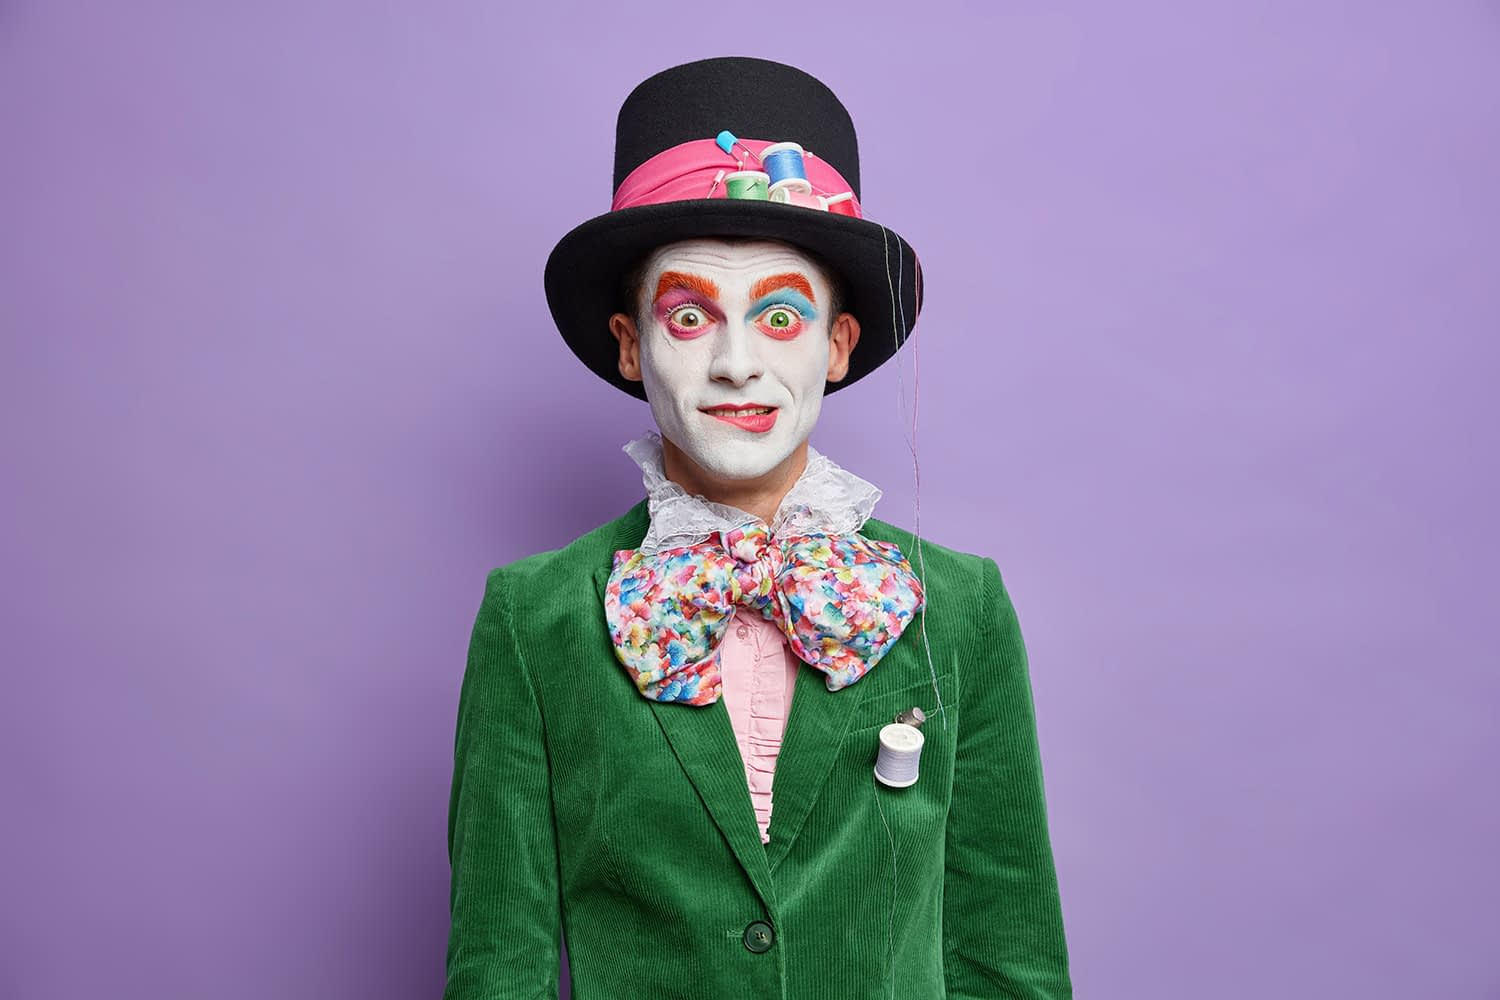 Surprised parade festival participant has image of hatter from wonderland wears bright makeup dressed in carnival costume poses against vivid purple wall.